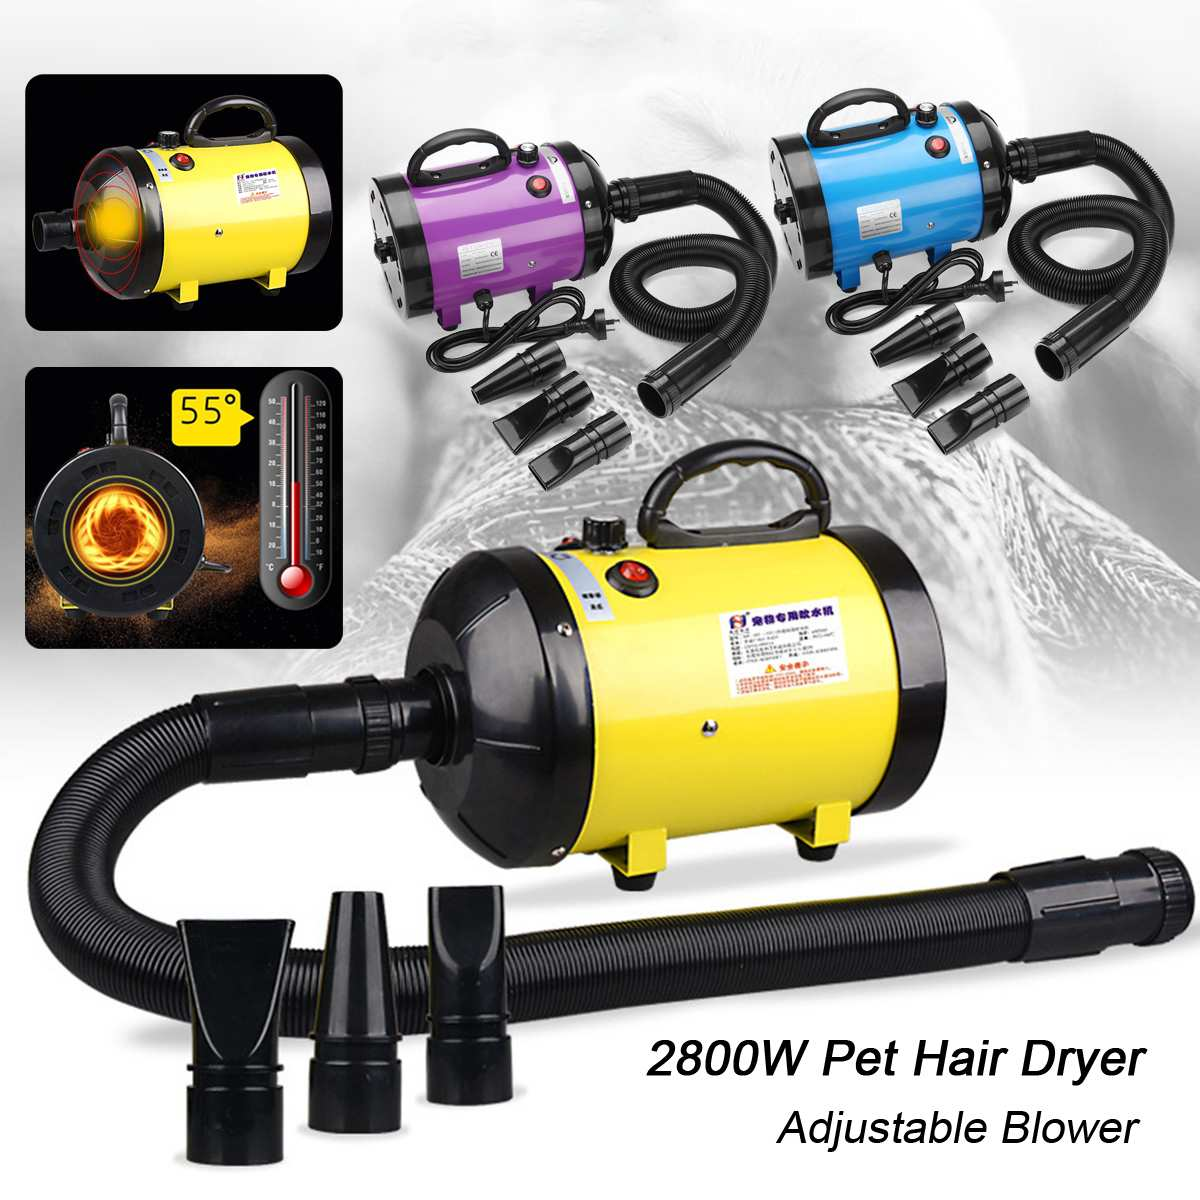 2800W Low Noise Pet Dog Grooming Dryer Pet Hair Dryer Blower Heater Adjustable Speed 220V~240V With 3 Nozzles For Dogs